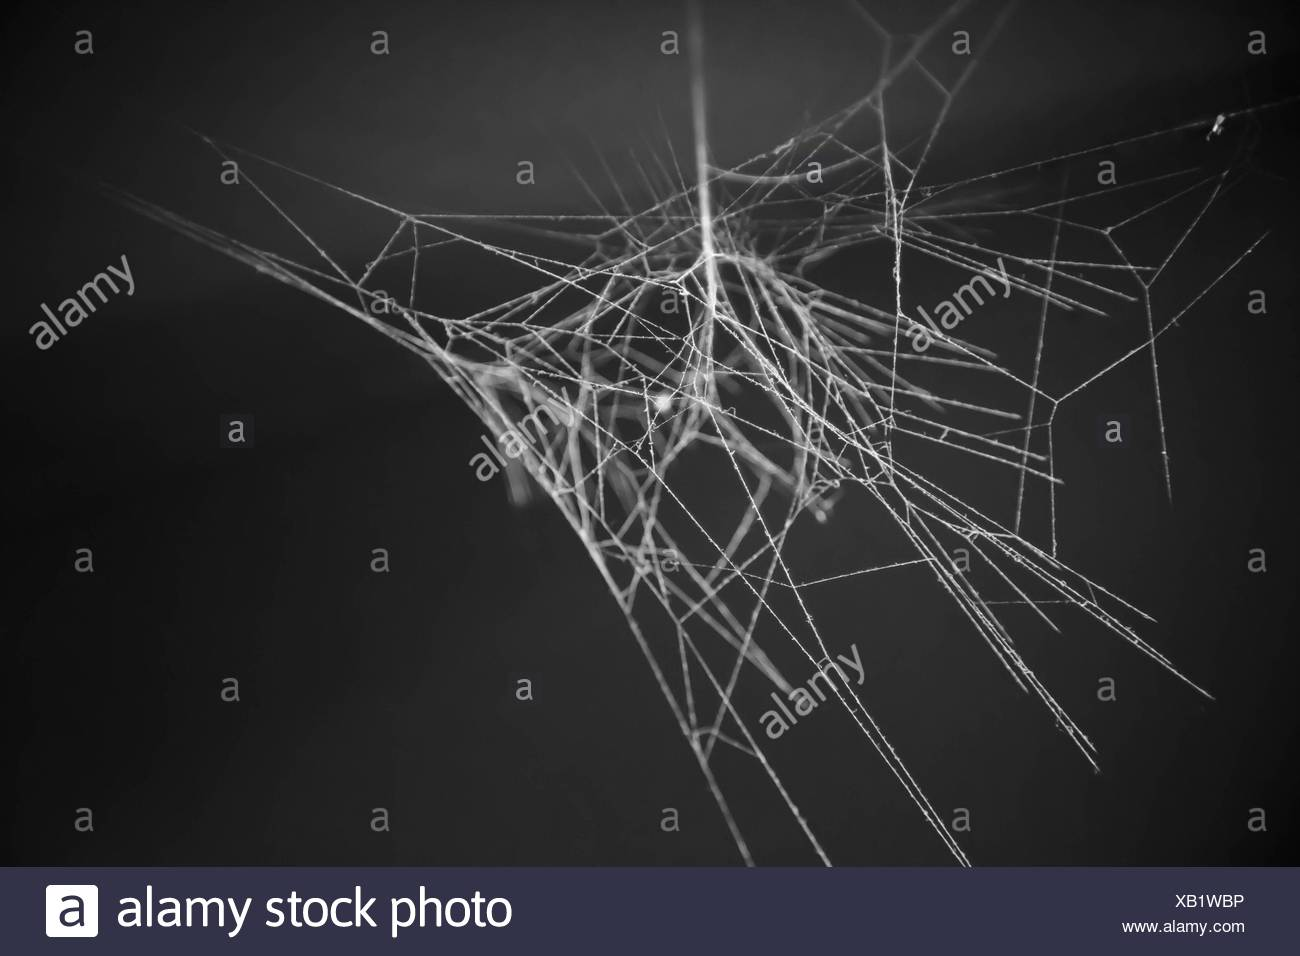 View Of Spider Web At Night - Stock Image